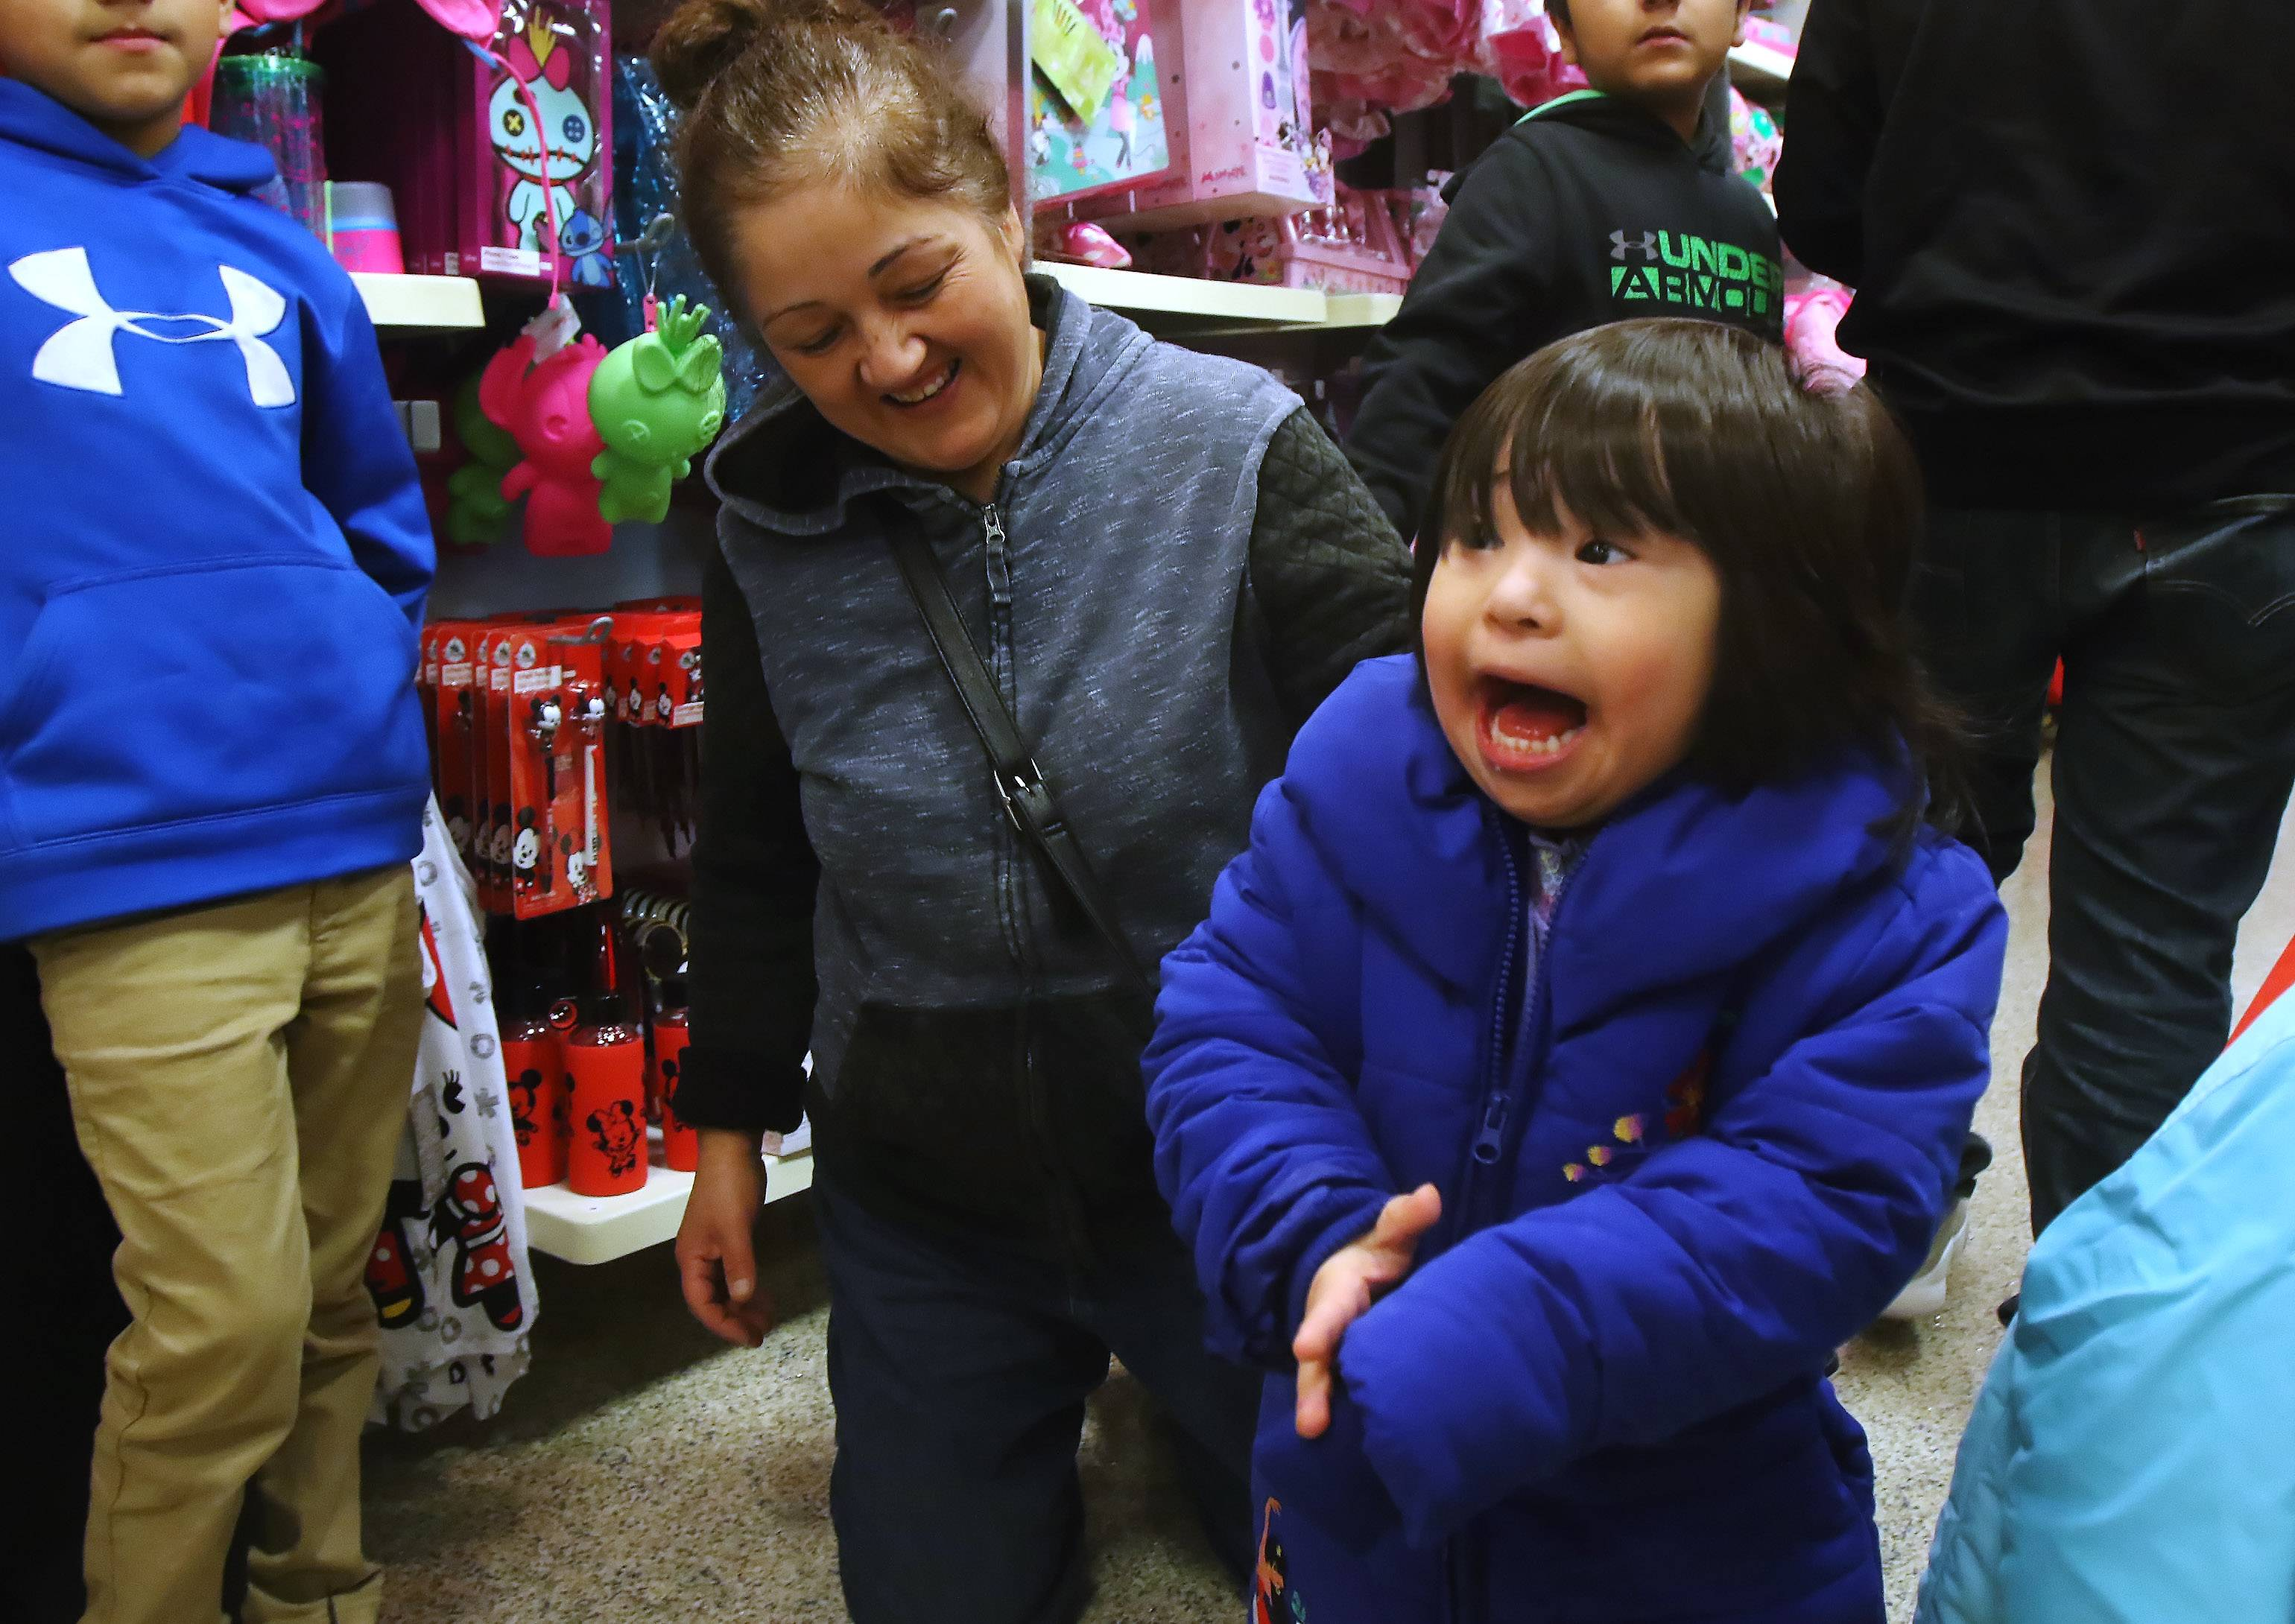 Four-year-old Bianca Martinez of Kenosha, Wis. is excited as she shops for clothes and toys with her mom, Rebeca, at the Disney Outlet on Sunday with the help of Make-A-Wish. Bianca, who suffers from Down syndrome and leukemia, was given a shopping experience at Gurnee Mills, visiting Build-A-Bear Workshop, Toys R Us Outlet, the Lego Store and other shops.